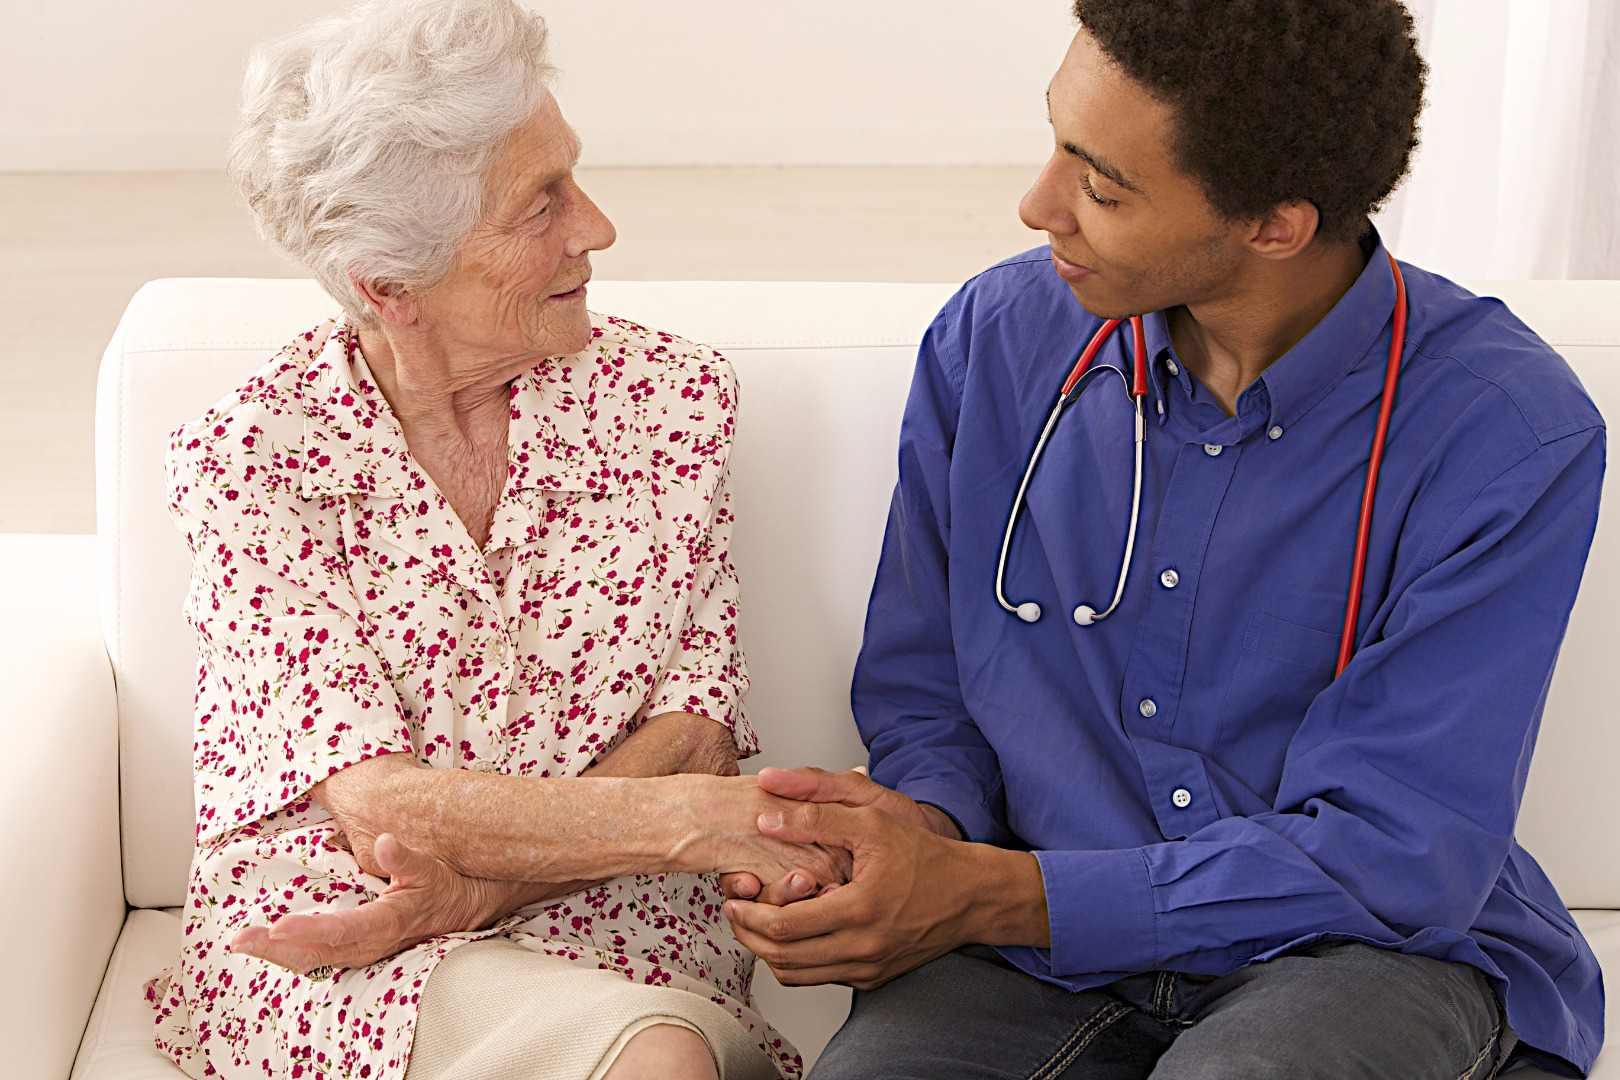 senior-woman-medical-visit-at-homejpg